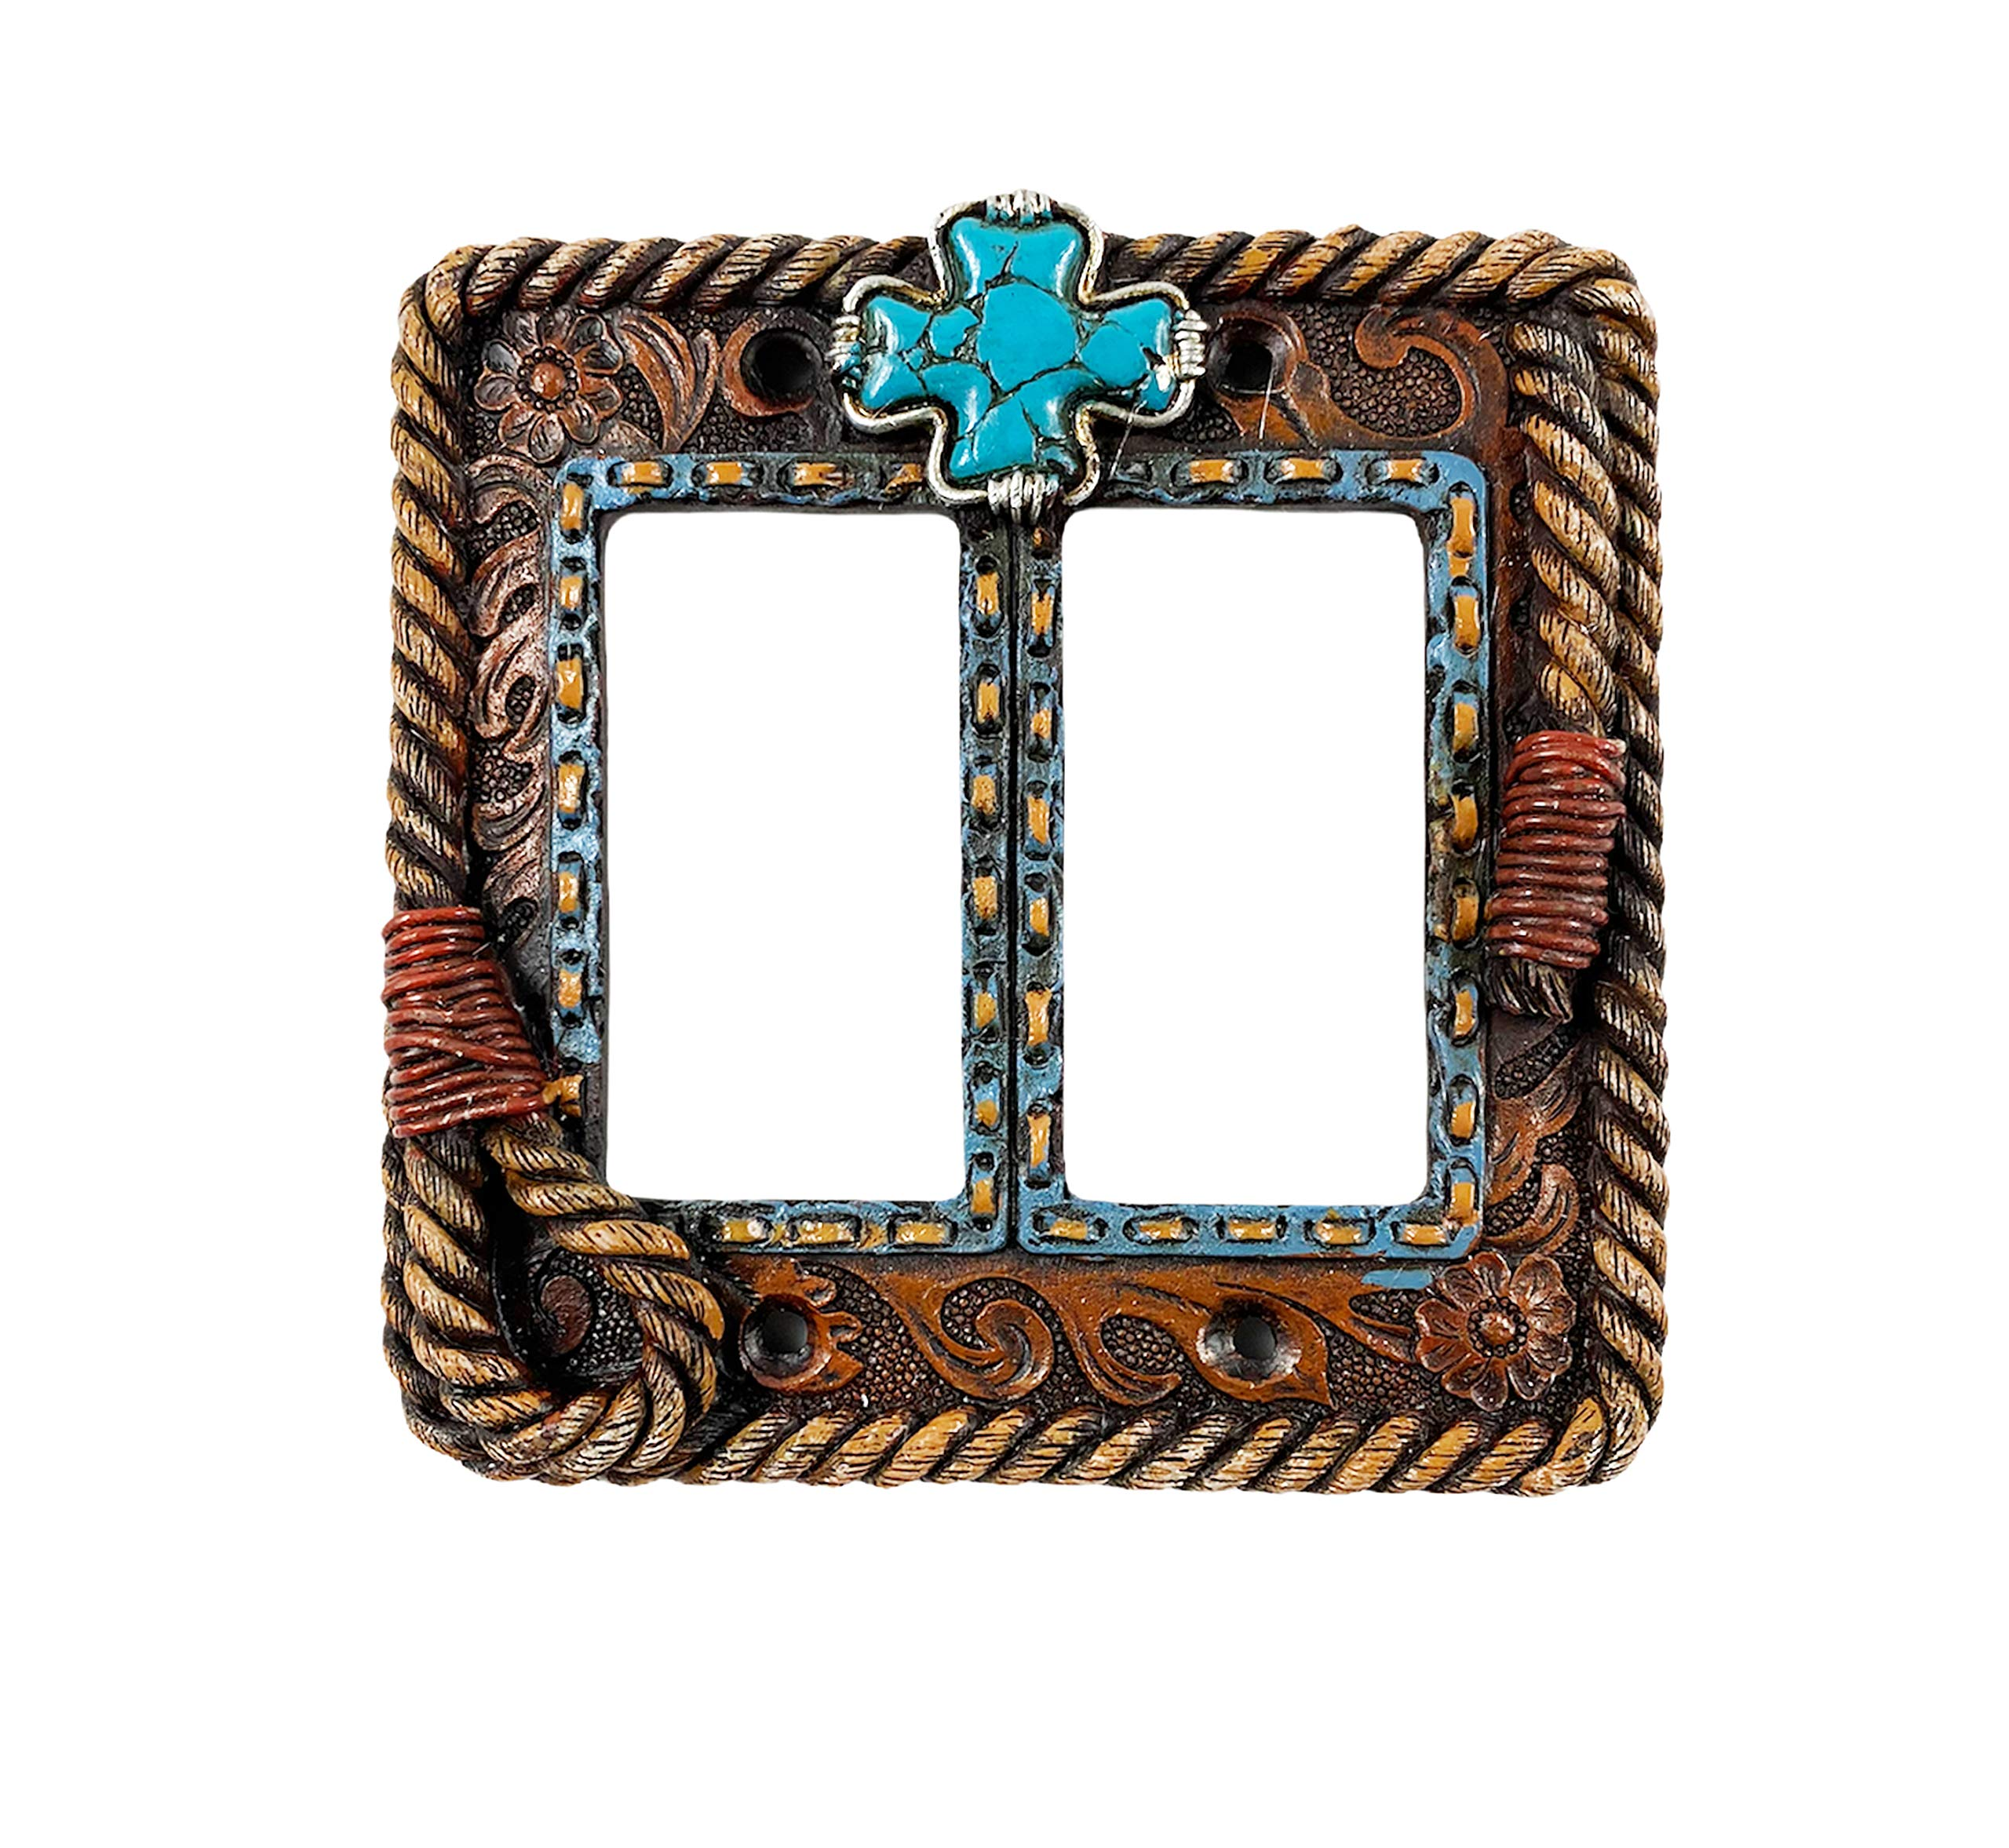 Urbalabs Western Braided Rope and Teal Cross Cowboy Decorative Light Switch Outlet Wall Plate Covers Country Home Rustic Light Switch Covers Single Double 2 Gang Switch Plates (Double Gang Rocker)